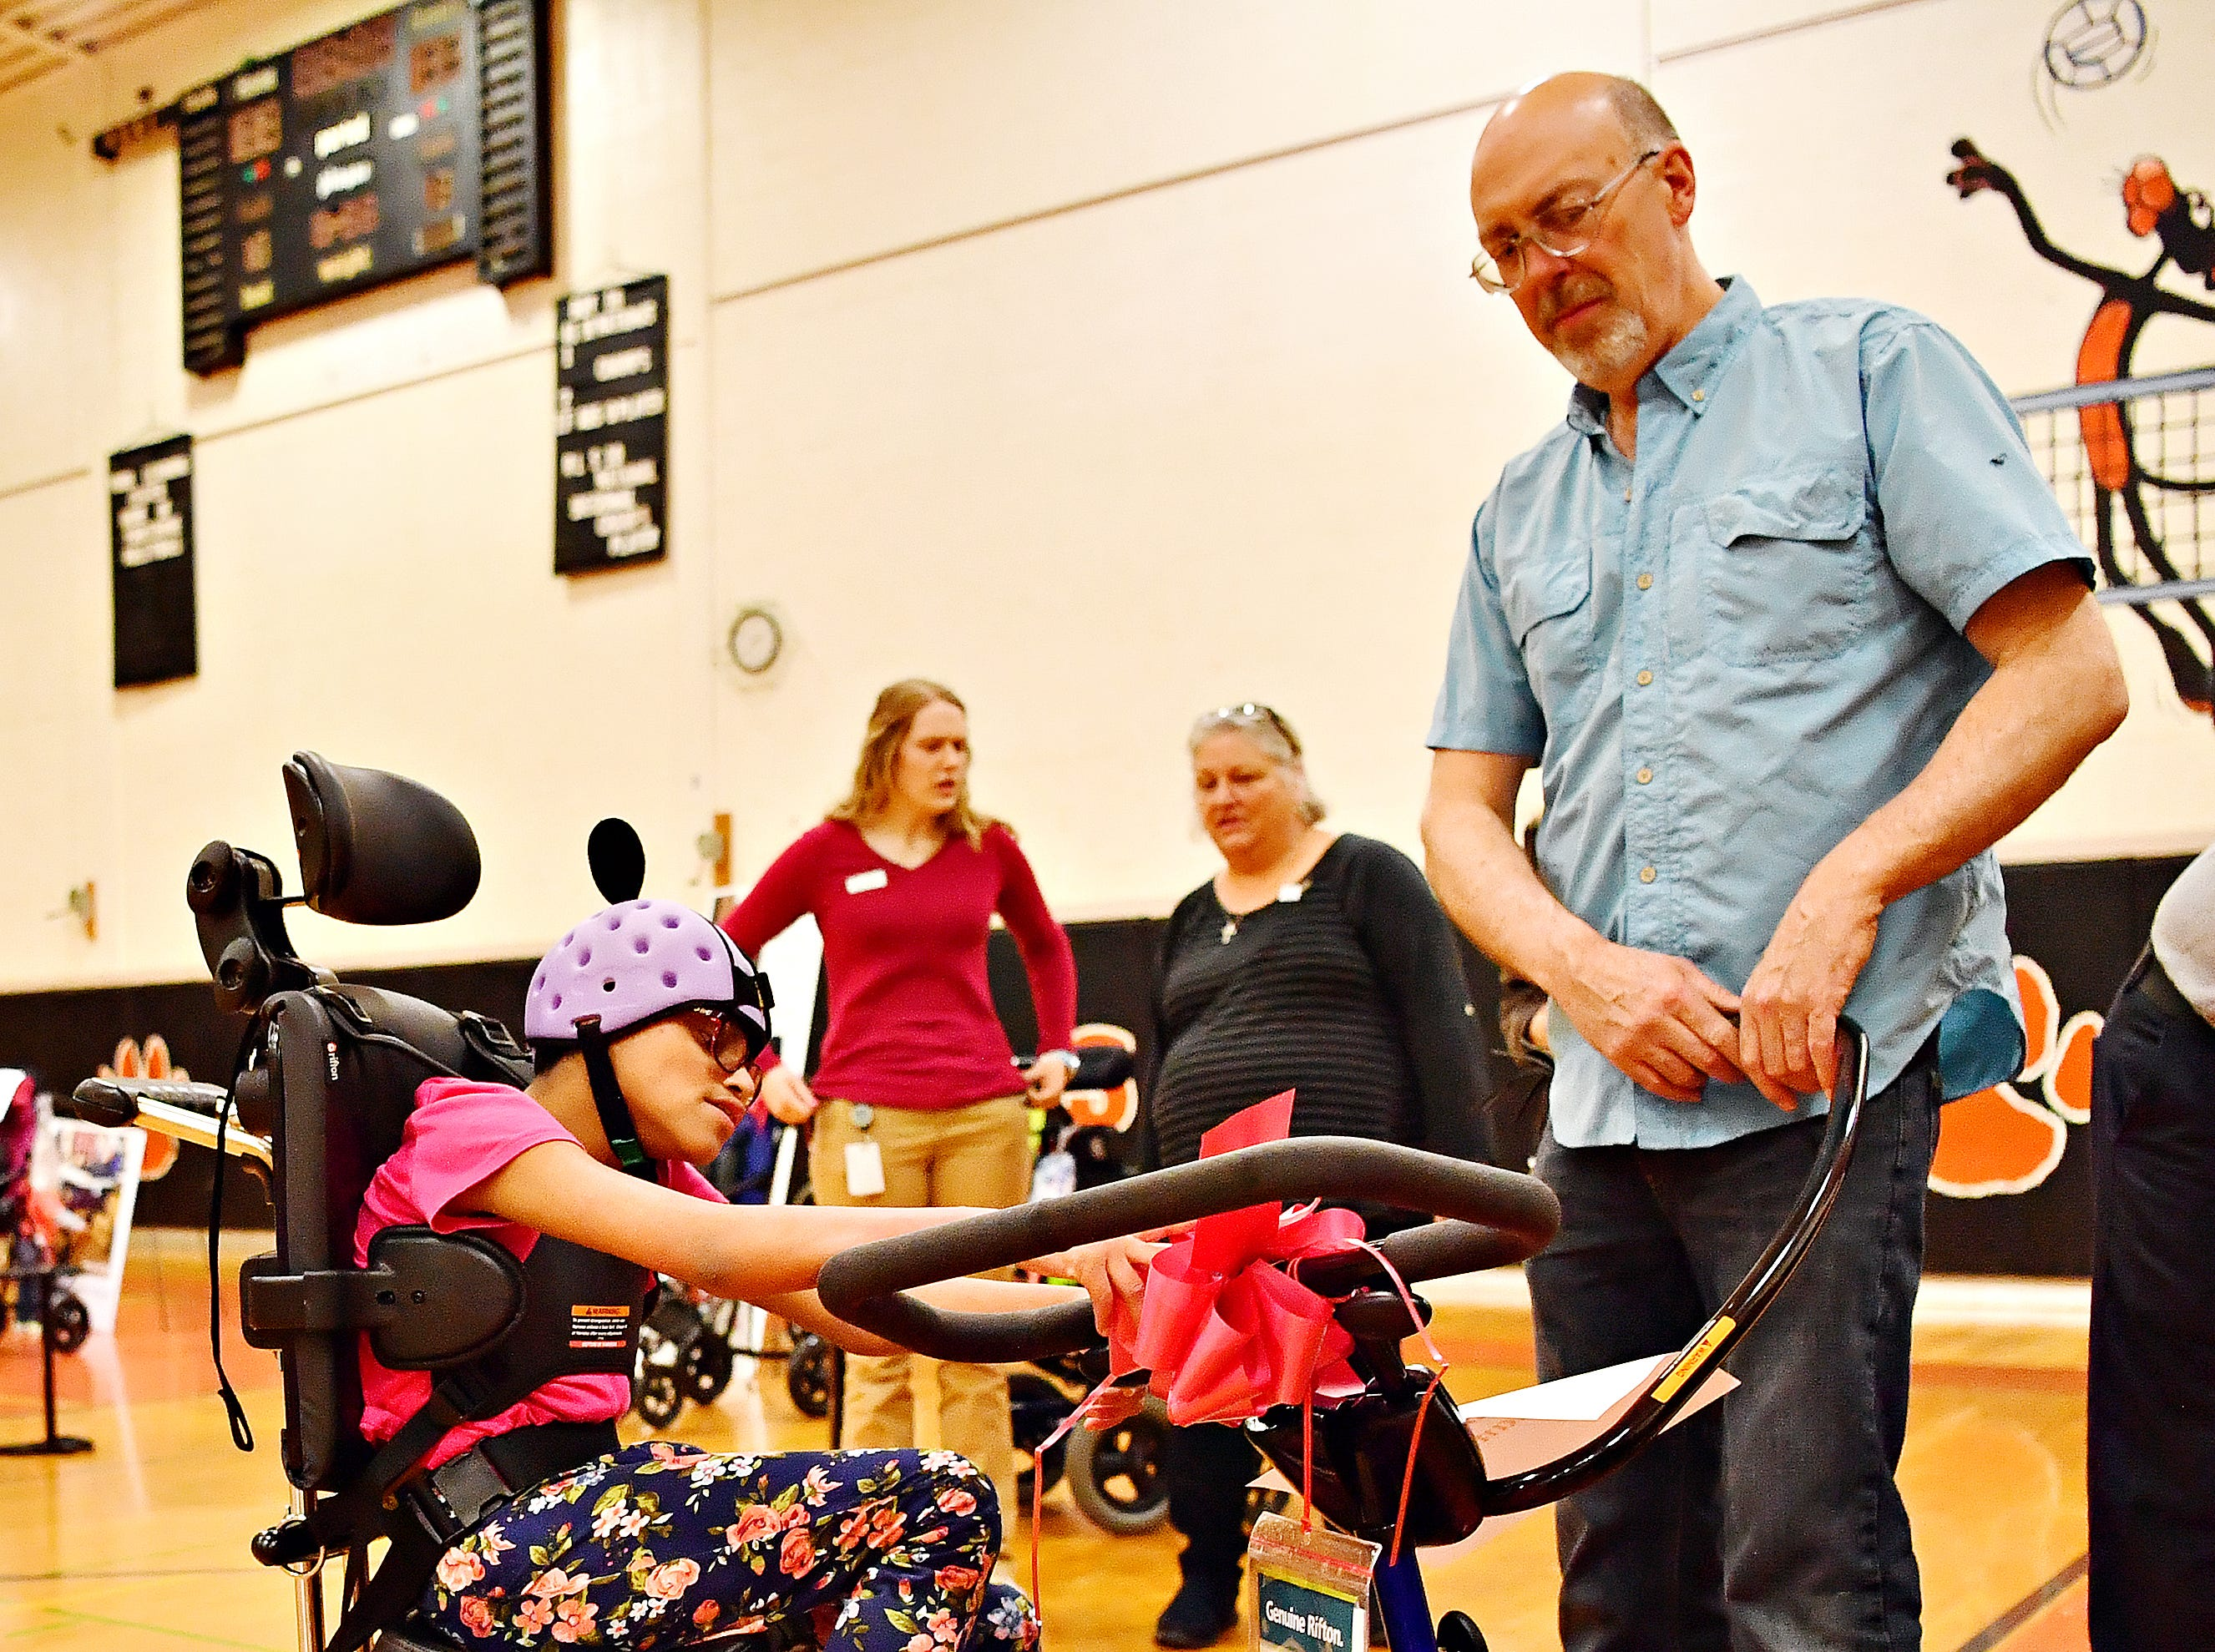 Variety, the Children's Charity, based in Pittsburg, presents adaptable equipment and communication devices to children with disabilities at York Learning Center in North York, Tuesday, May 14, 2019. Dawn J. Sagert photo